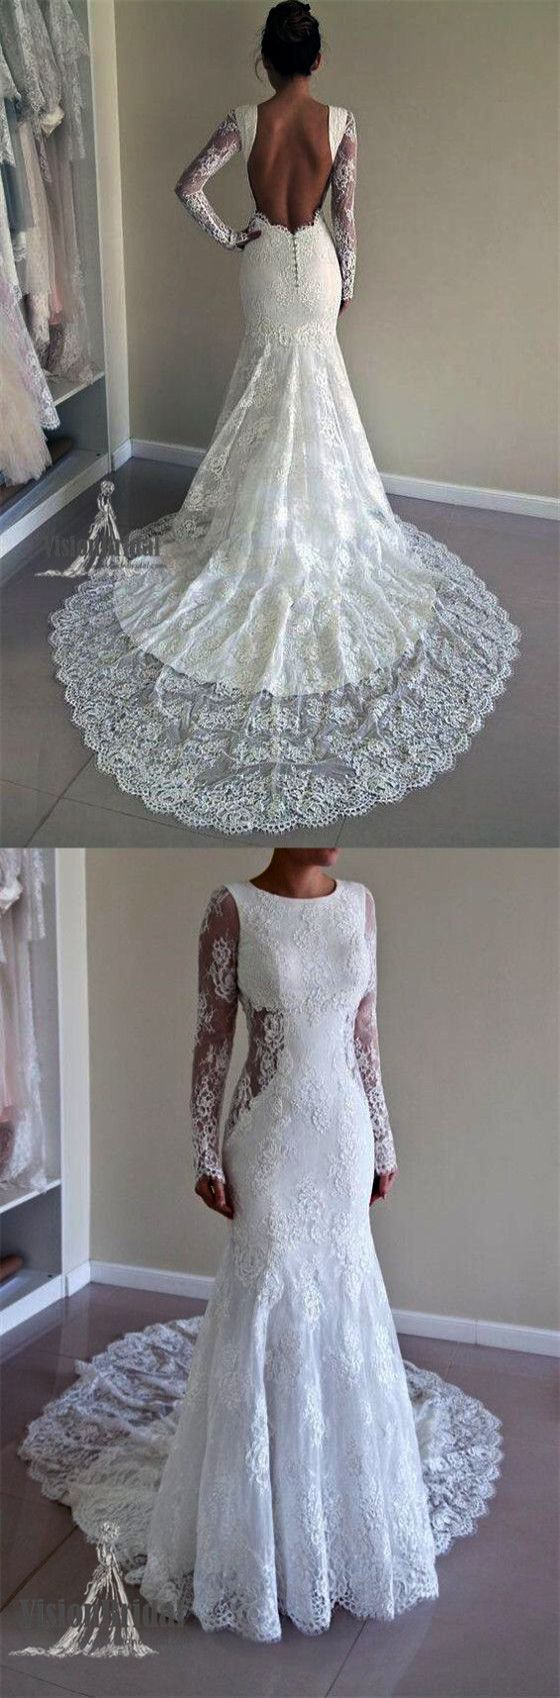 Trendy ue diamond lace wedding dress long sleeve marvelous lace